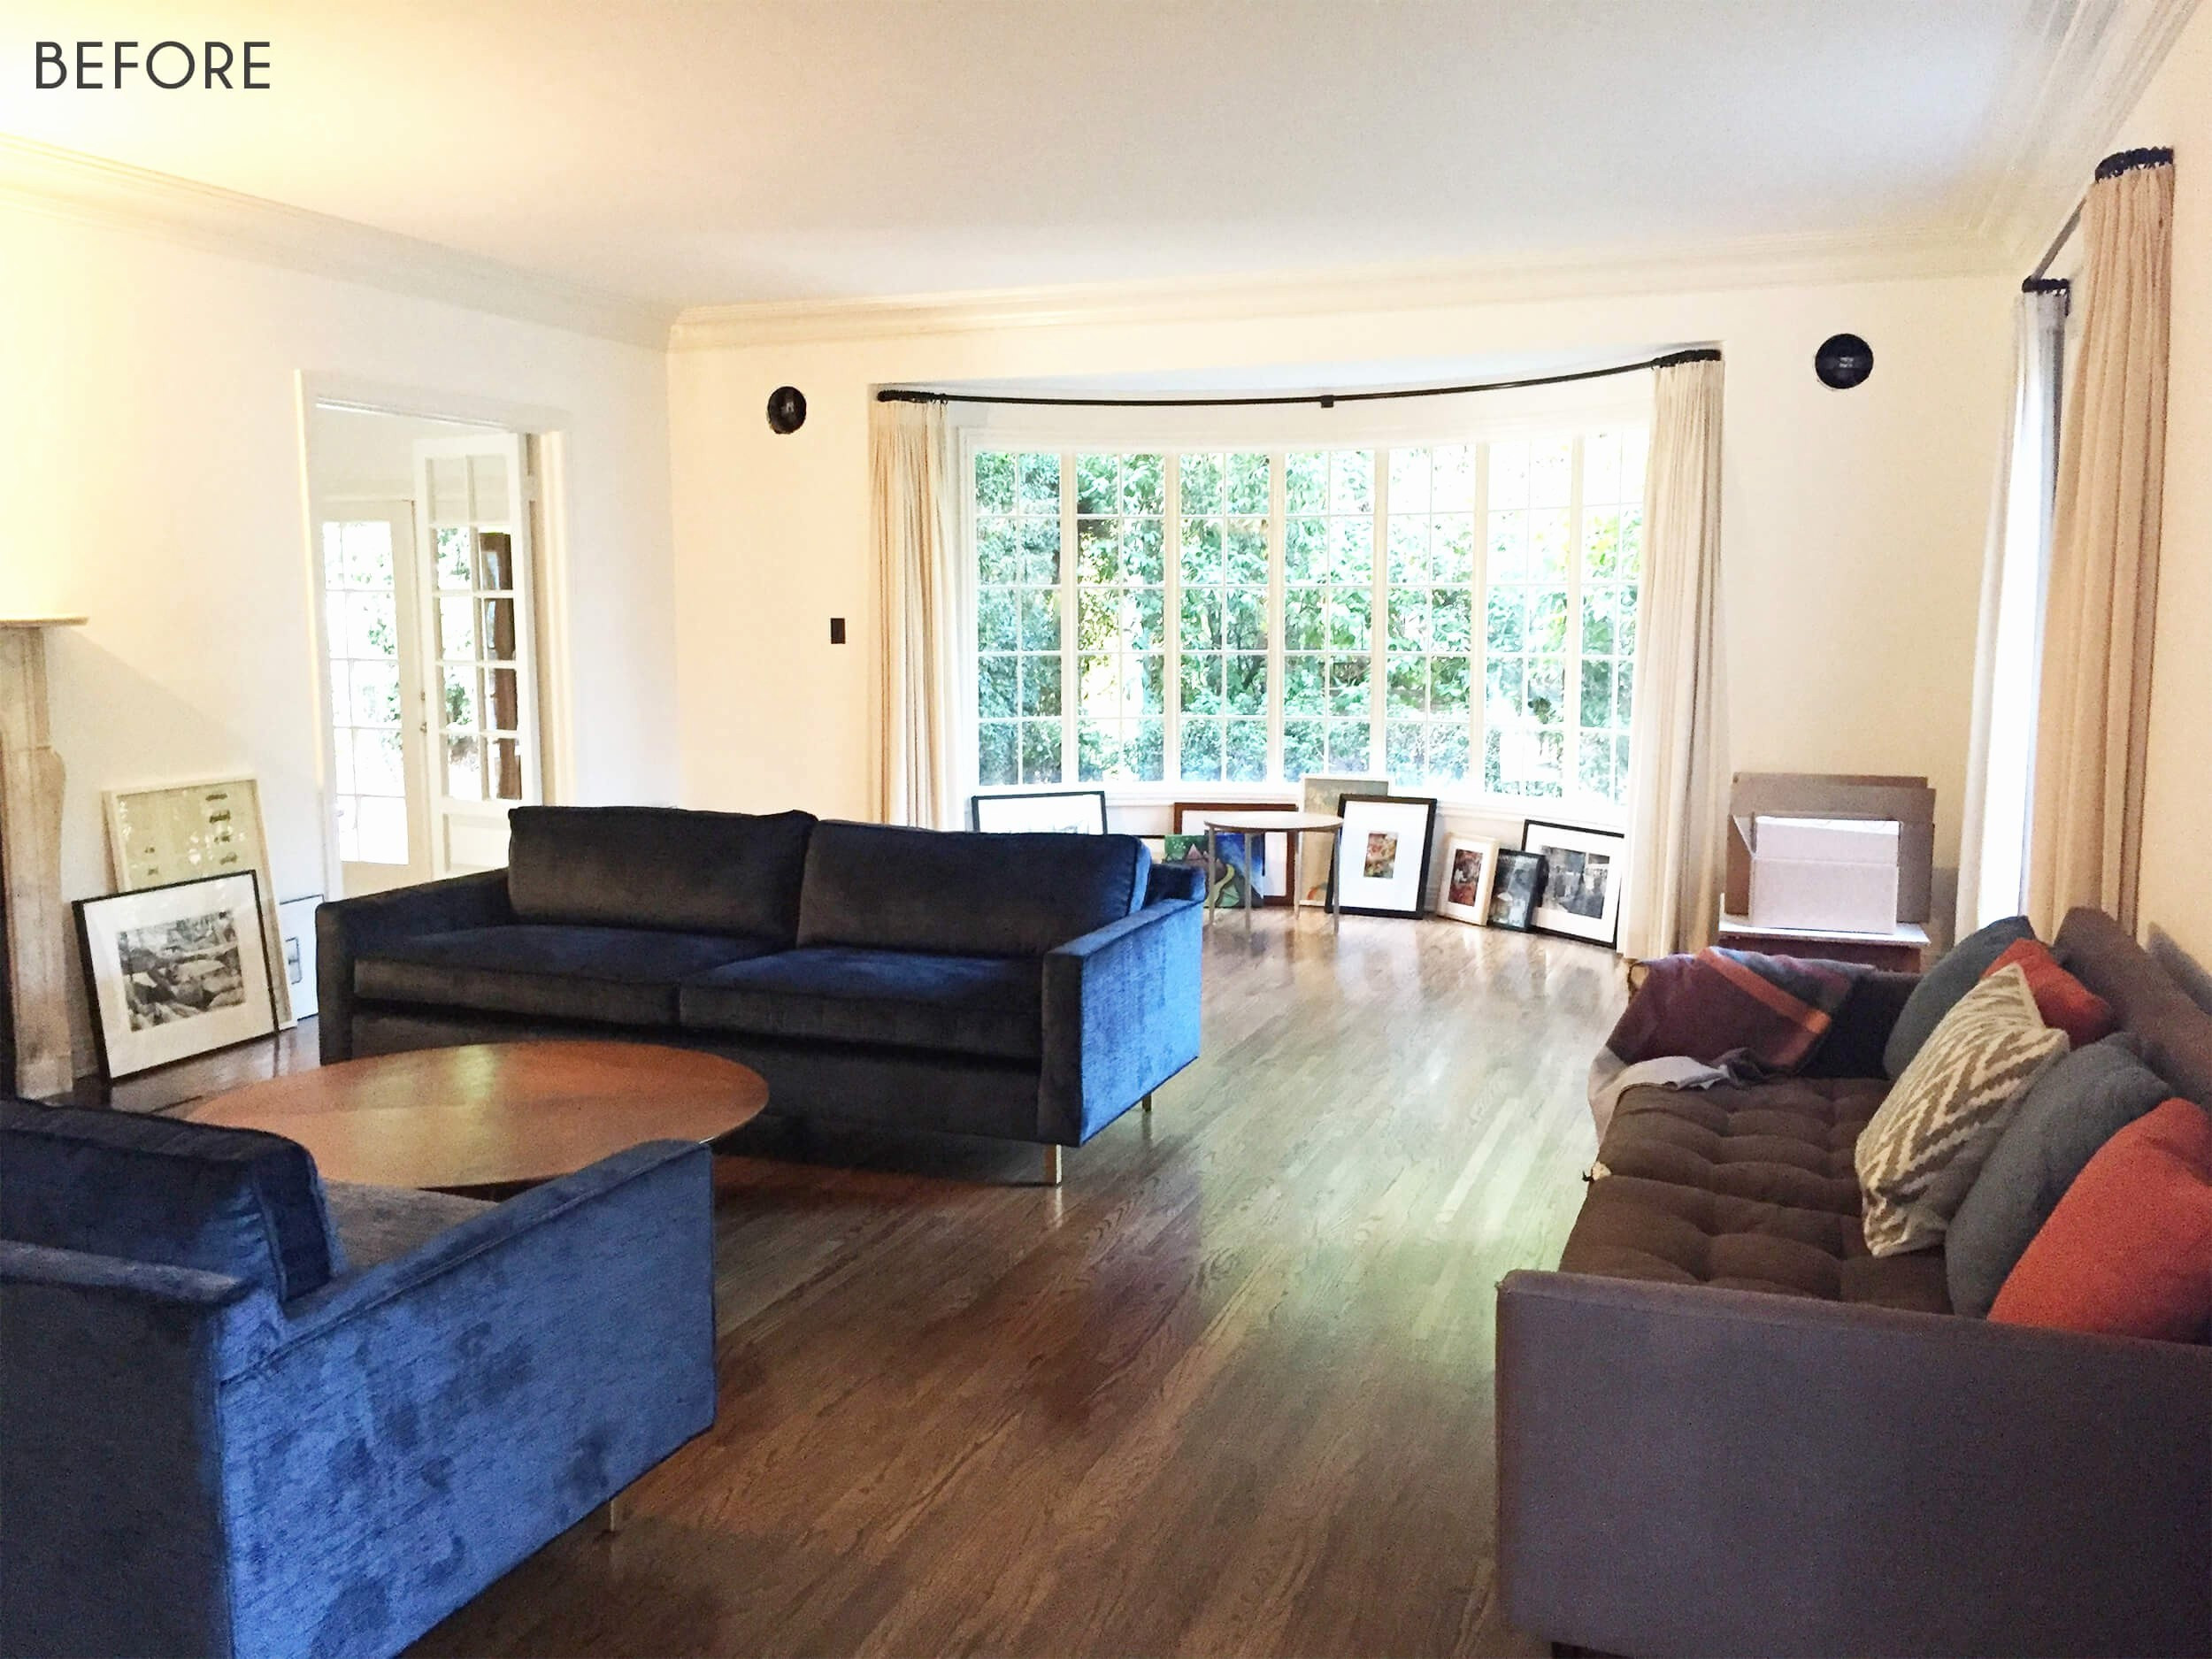 where to buy hardwood flooring near me of luxury living room flooring home design interior within wood floor living room luxury living room traditional decorating ideas awesome shaker chairs 0d fresh living room with wood floors payday1000loansusd me